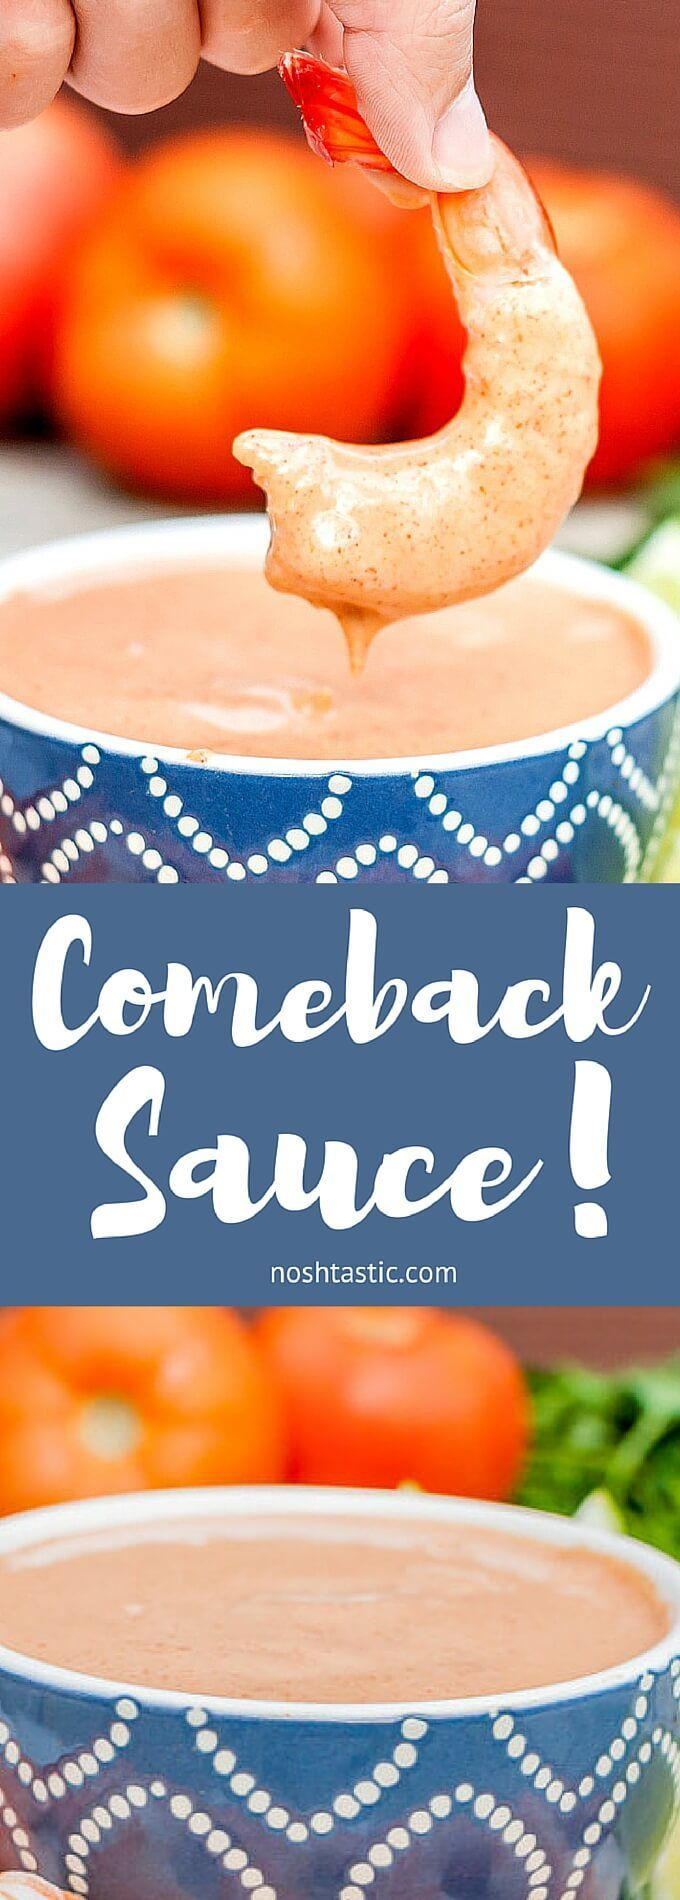 Comeback Sauce, a Jackson, Mississippi original in the same family as Fry Sauce, Thousand Island, Remoulade Sauce and Cocktail Sauce, it's SO good you'll be back for more!! | Gluten Free | Dairy Free | Vegetarian